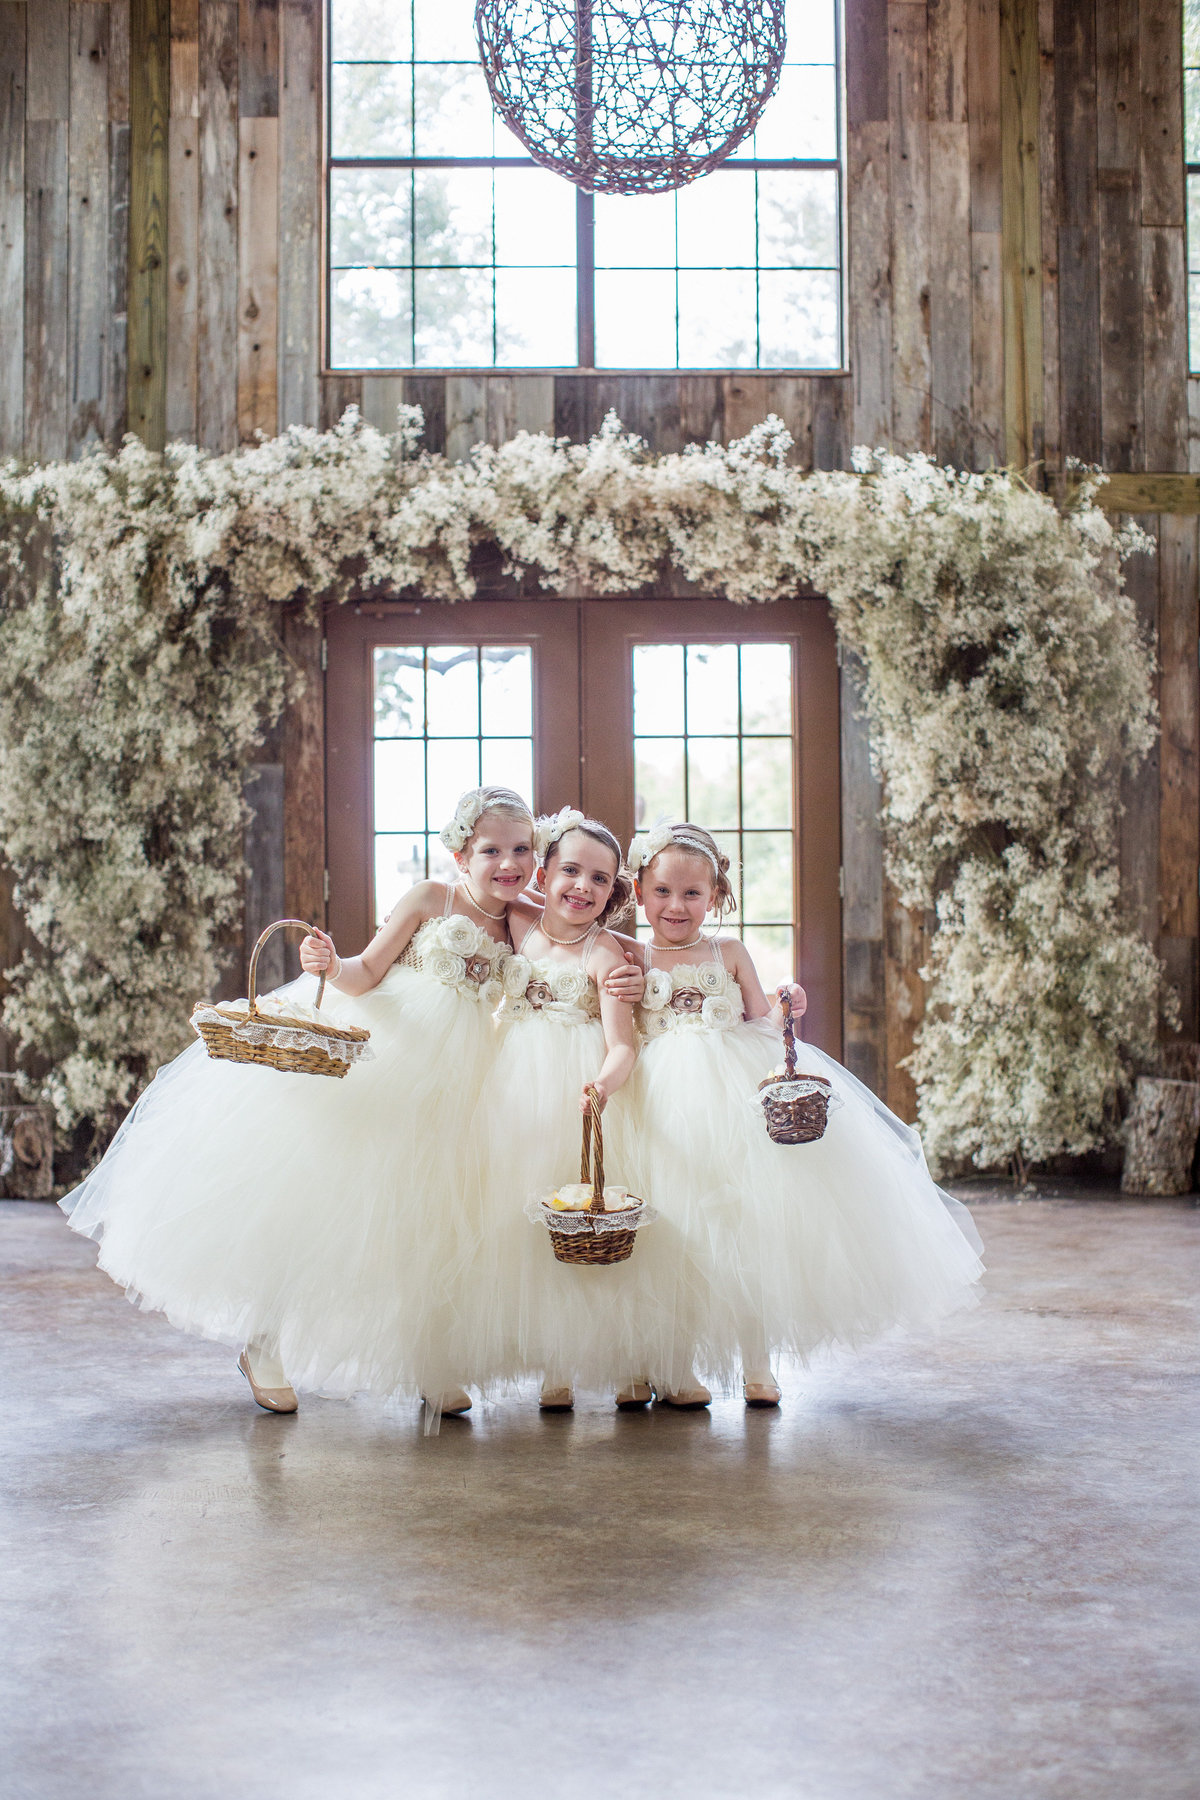 flower girls pose for portrait before wedding ceremony in Texas Hill Country wedding at Vista West Ranch